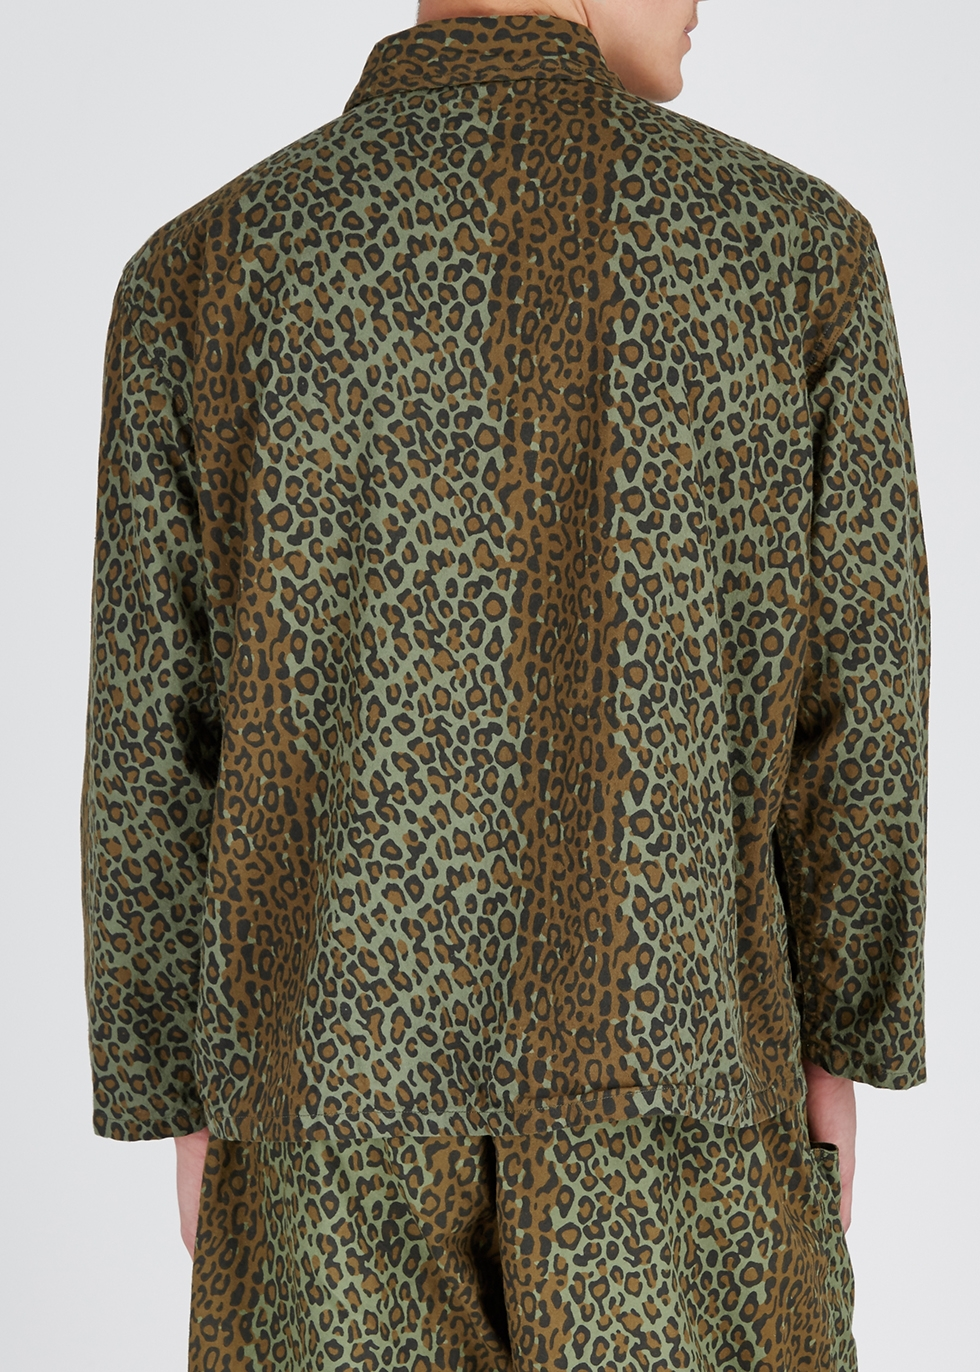 Hunting leopard-print cotton shirt - South2 West8